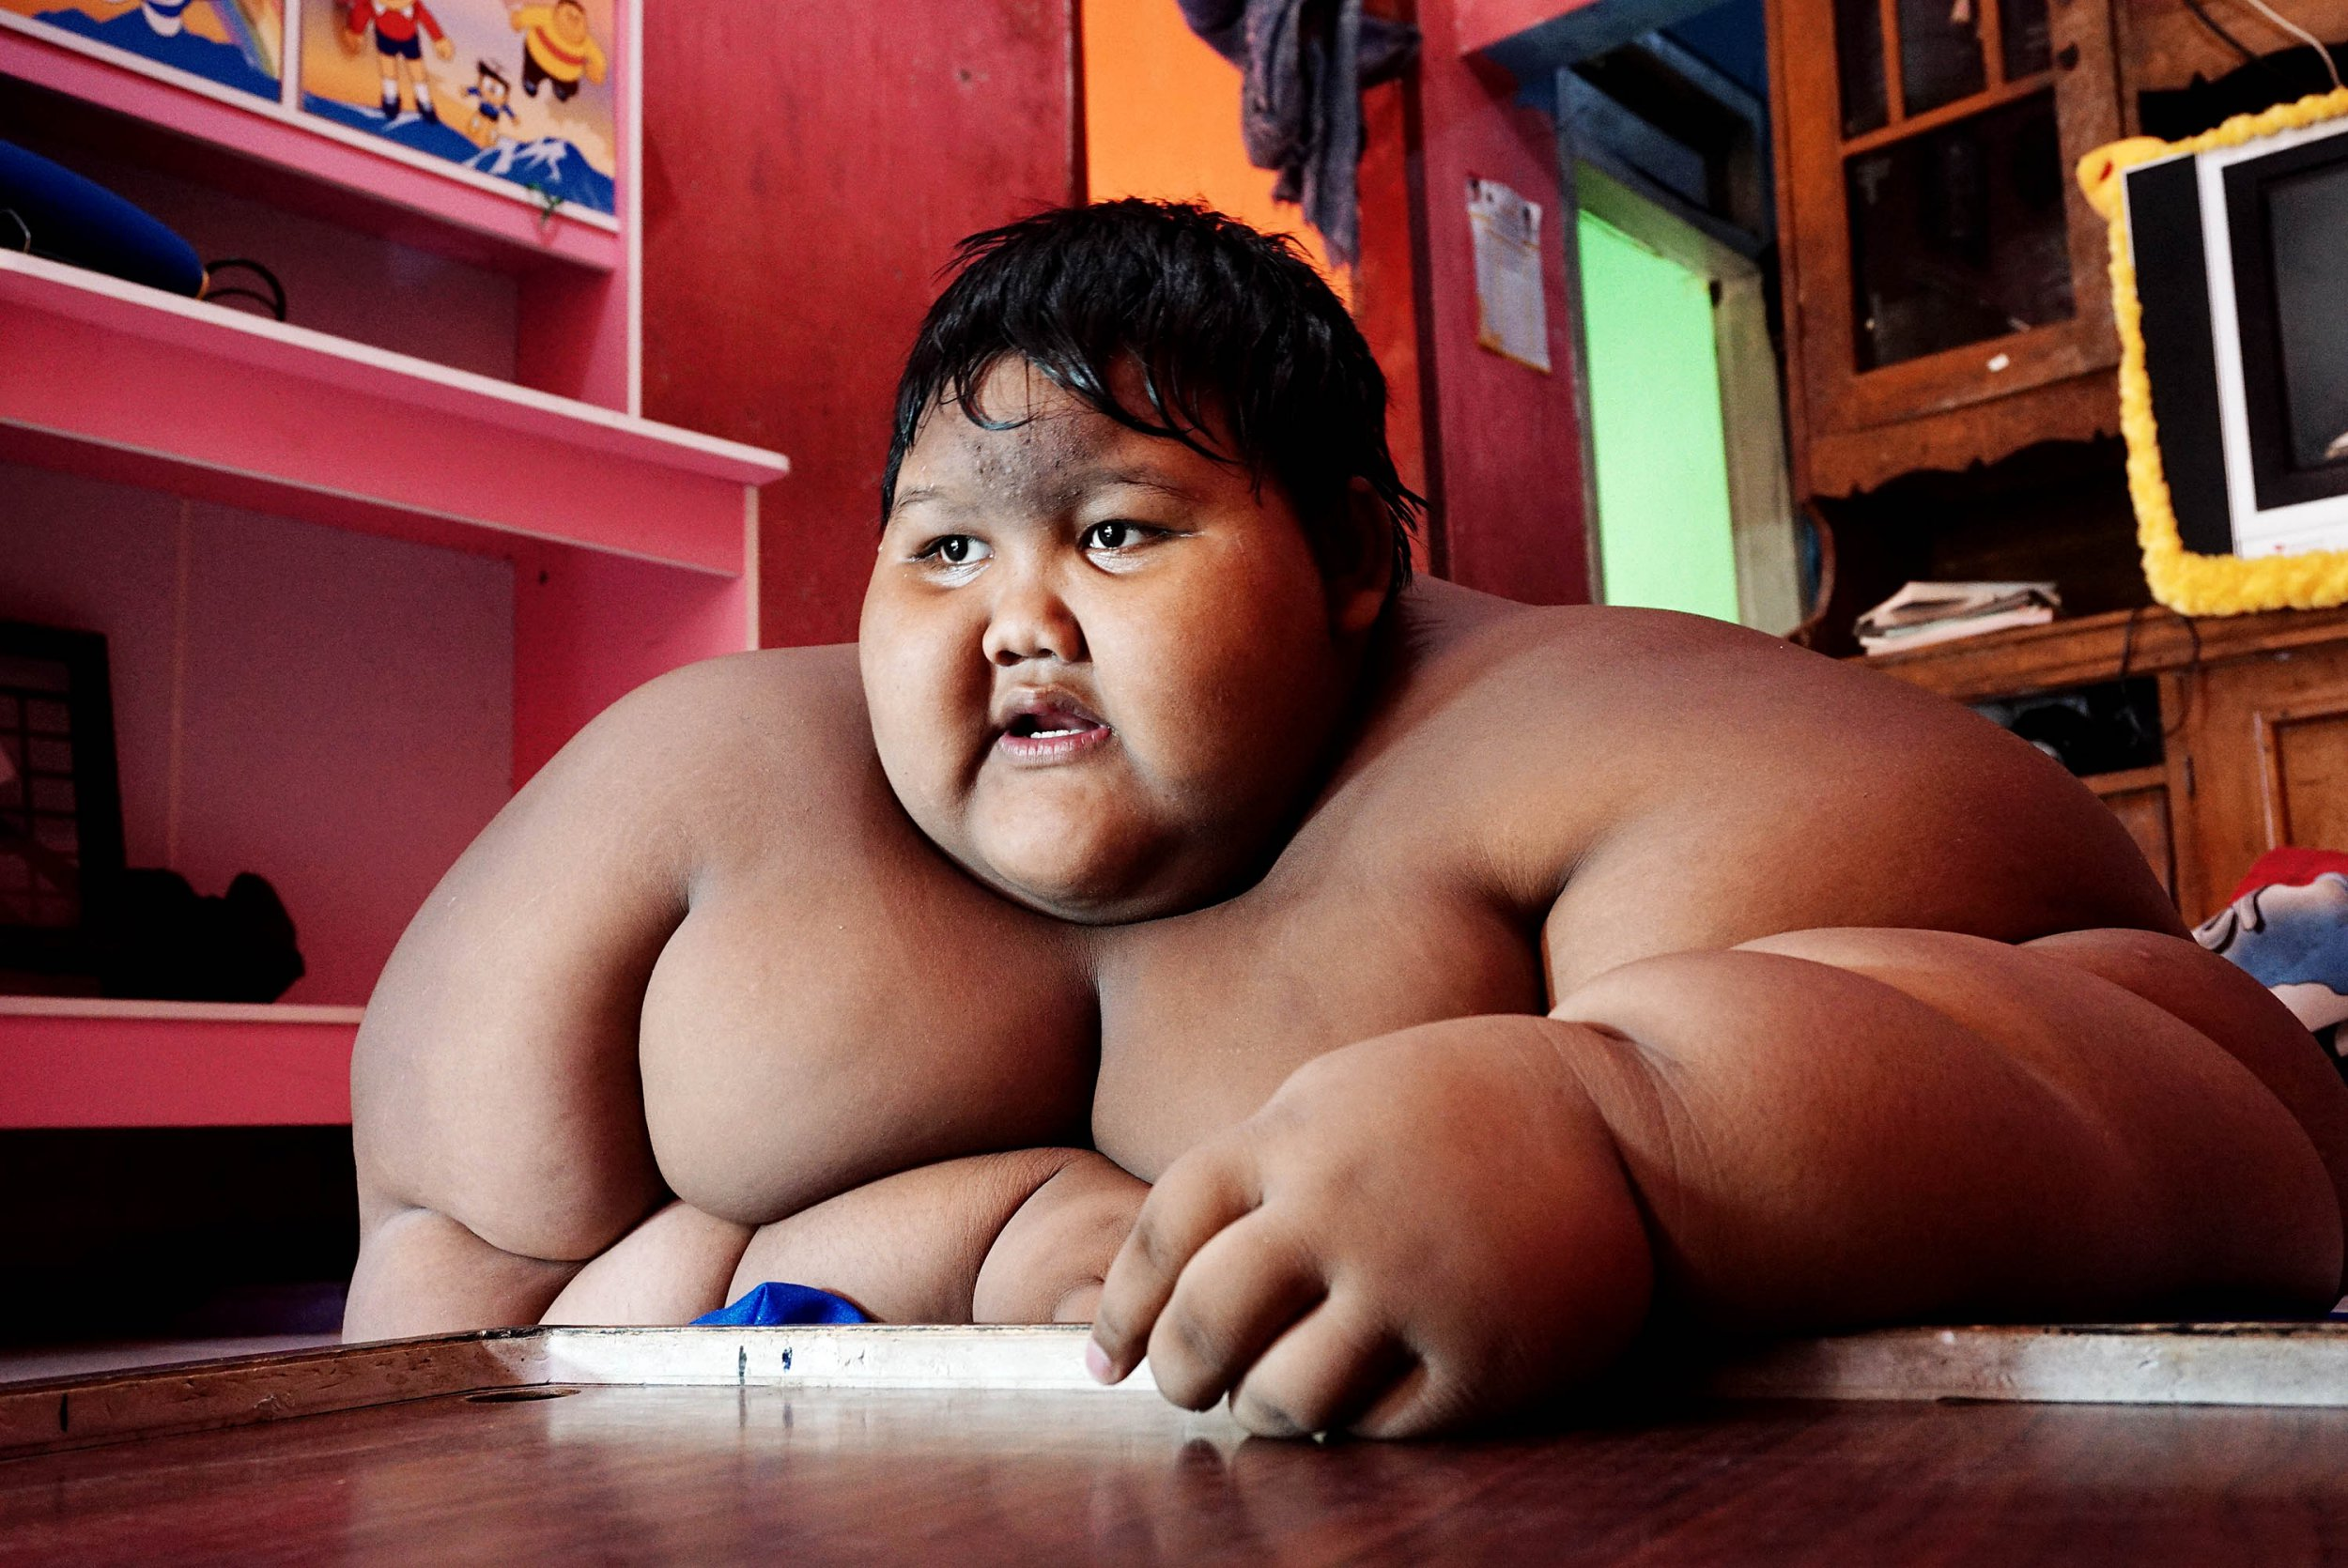 *** EXCLUSIVE - VIDEO AVAILABLE *** ***FILE PHOTOS*** WEST JAVA, INDONESIA - JUNE 13: Arya Permana 10-year-old who weights 192 kilograms sleeping in his home on June 13, 2016 in West Java, Indonesia. A THIRTEEN-year-old boy, who once weighed 423llbs, has lost over half of his body weight thanks to weight loss surgery and is now looking to have his excess skin removed. Once known as the heaviest child in the world, Arya Permana, from Karawang, West Java, Indonesia is now an active 13-year-old after losing an incredible 220lbs. When he was 10-years-old - and at his heaviest - Arya weighed 423lbs (over 30 stone or 192kg) ? the same as six boys his same age. But for all the ways that his life has improved, the weight loss has resulted in a large amount of excess skin on Arya?s arms and chest in particular. The teenager is hoping to have skin removal surgery, at the Hasan Sadikin Hospital in Bandung, after completing the national exams. PHOTOGRAPH BY Jefta Images / Barcroft Images